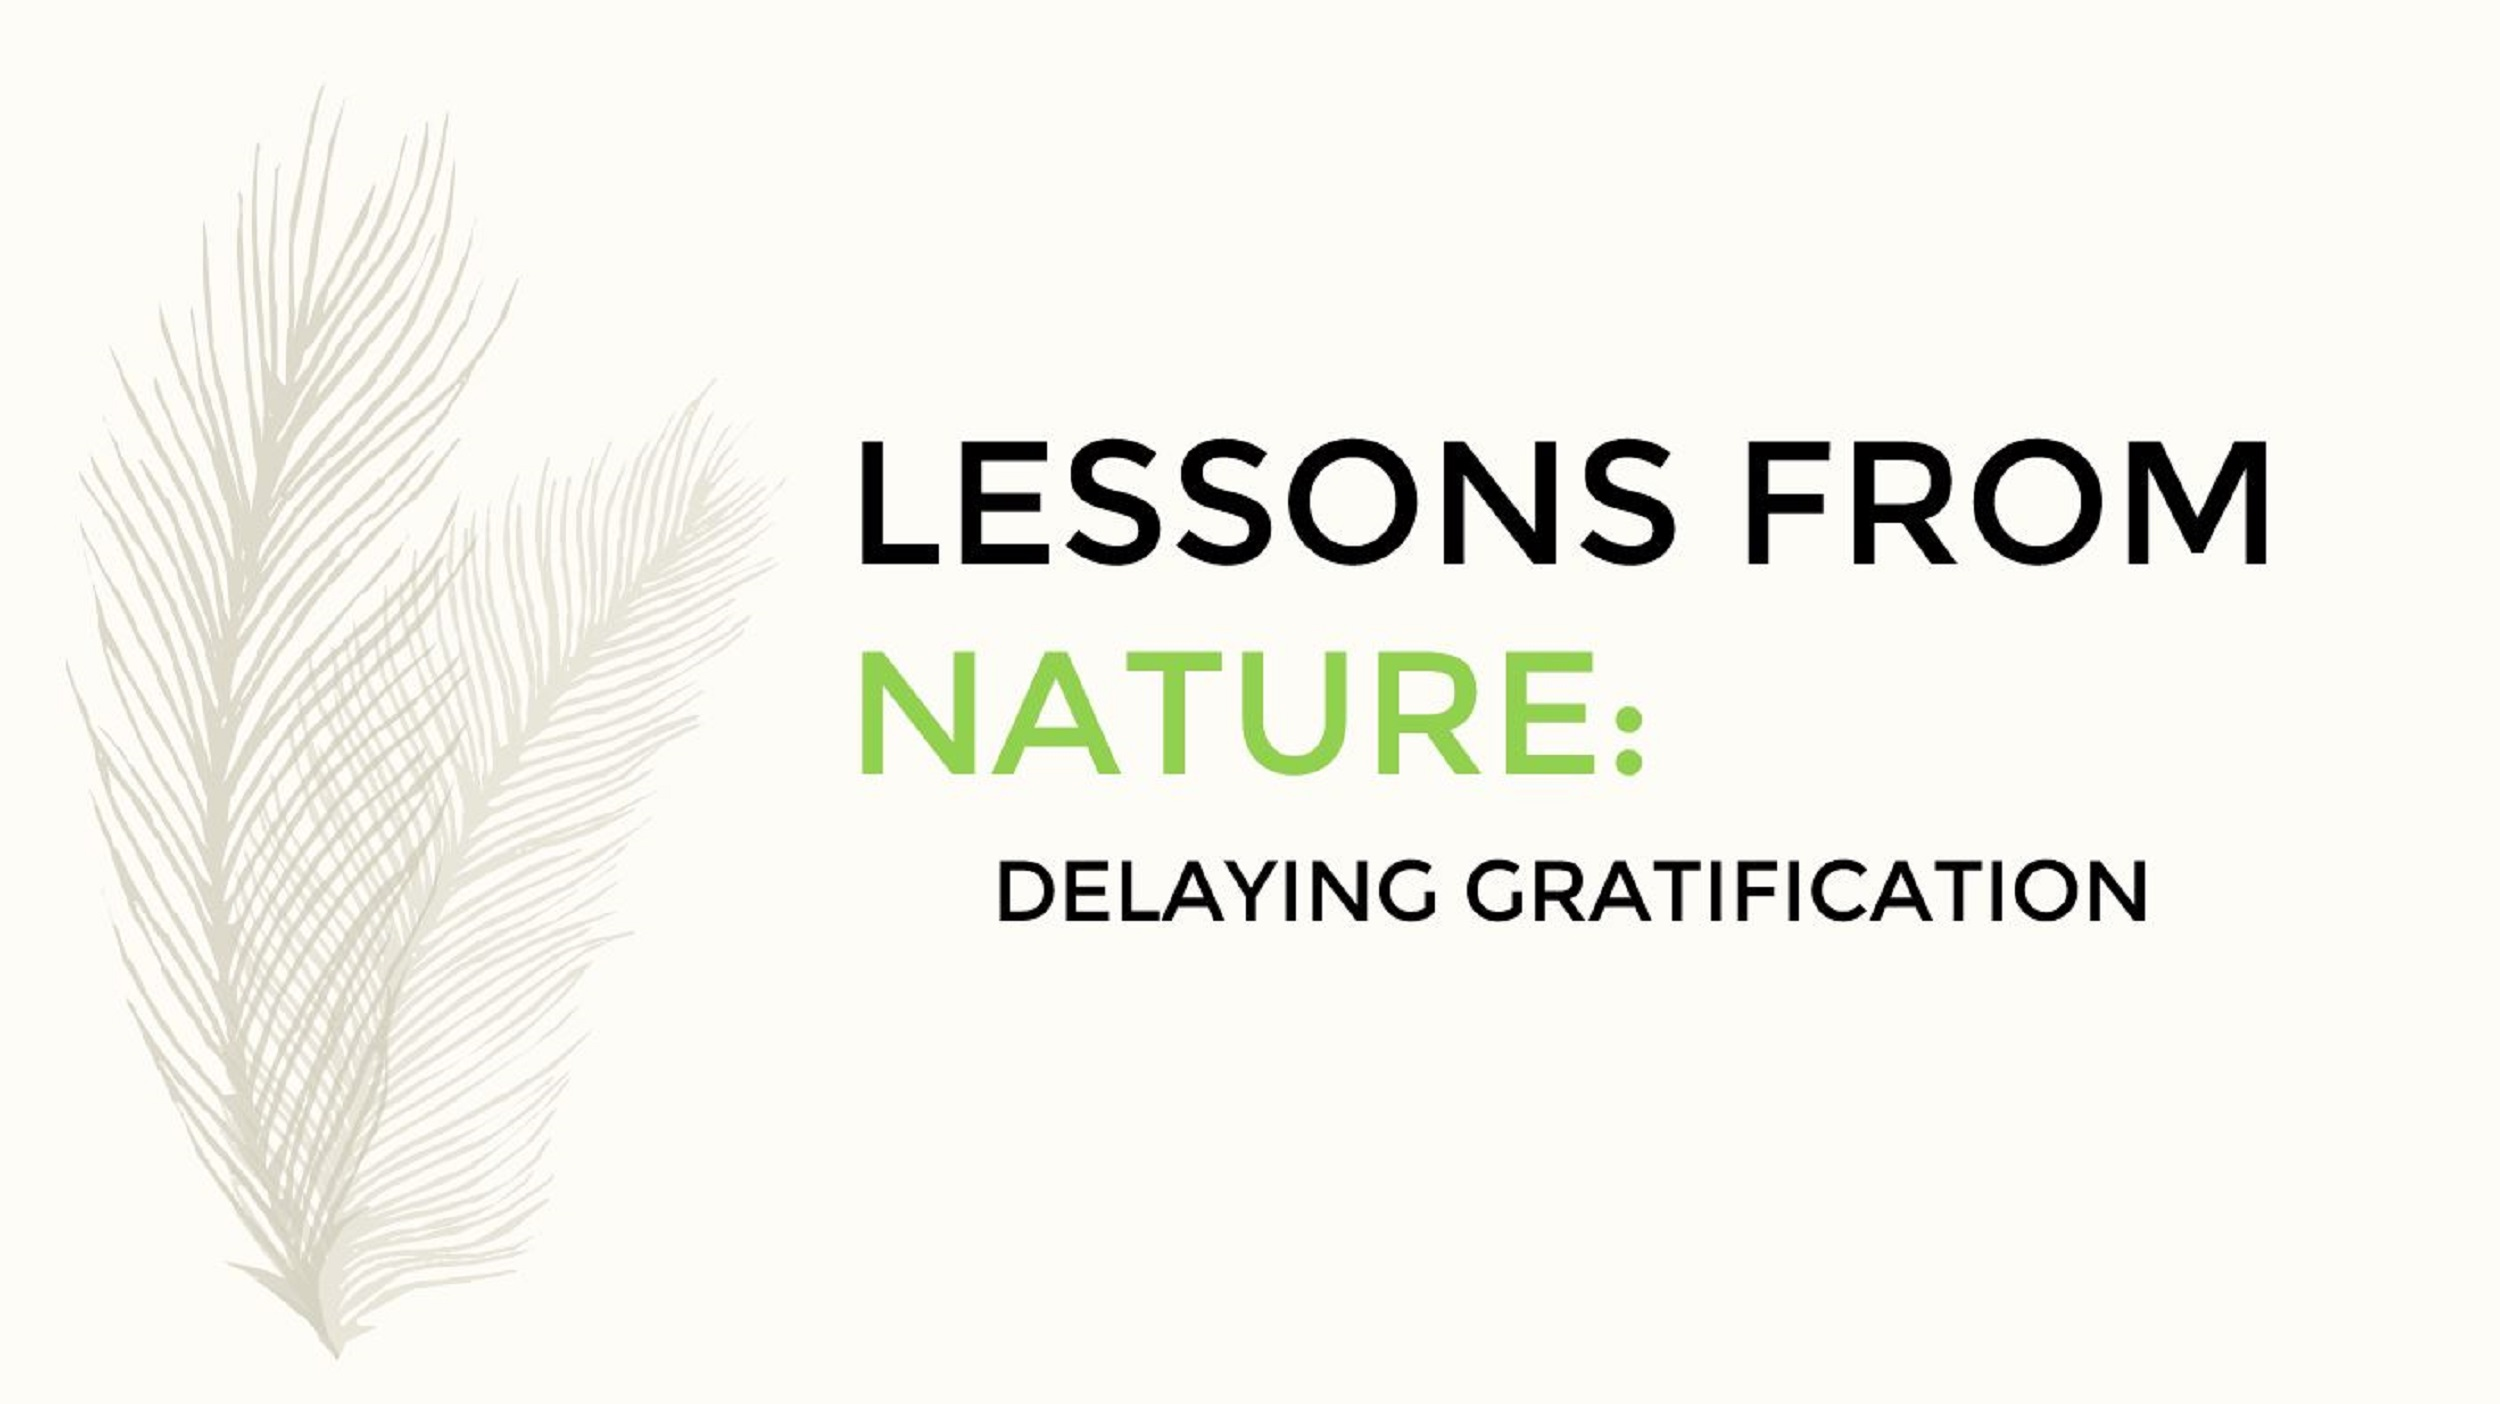 Lessons From Nature: Delaying Gratification